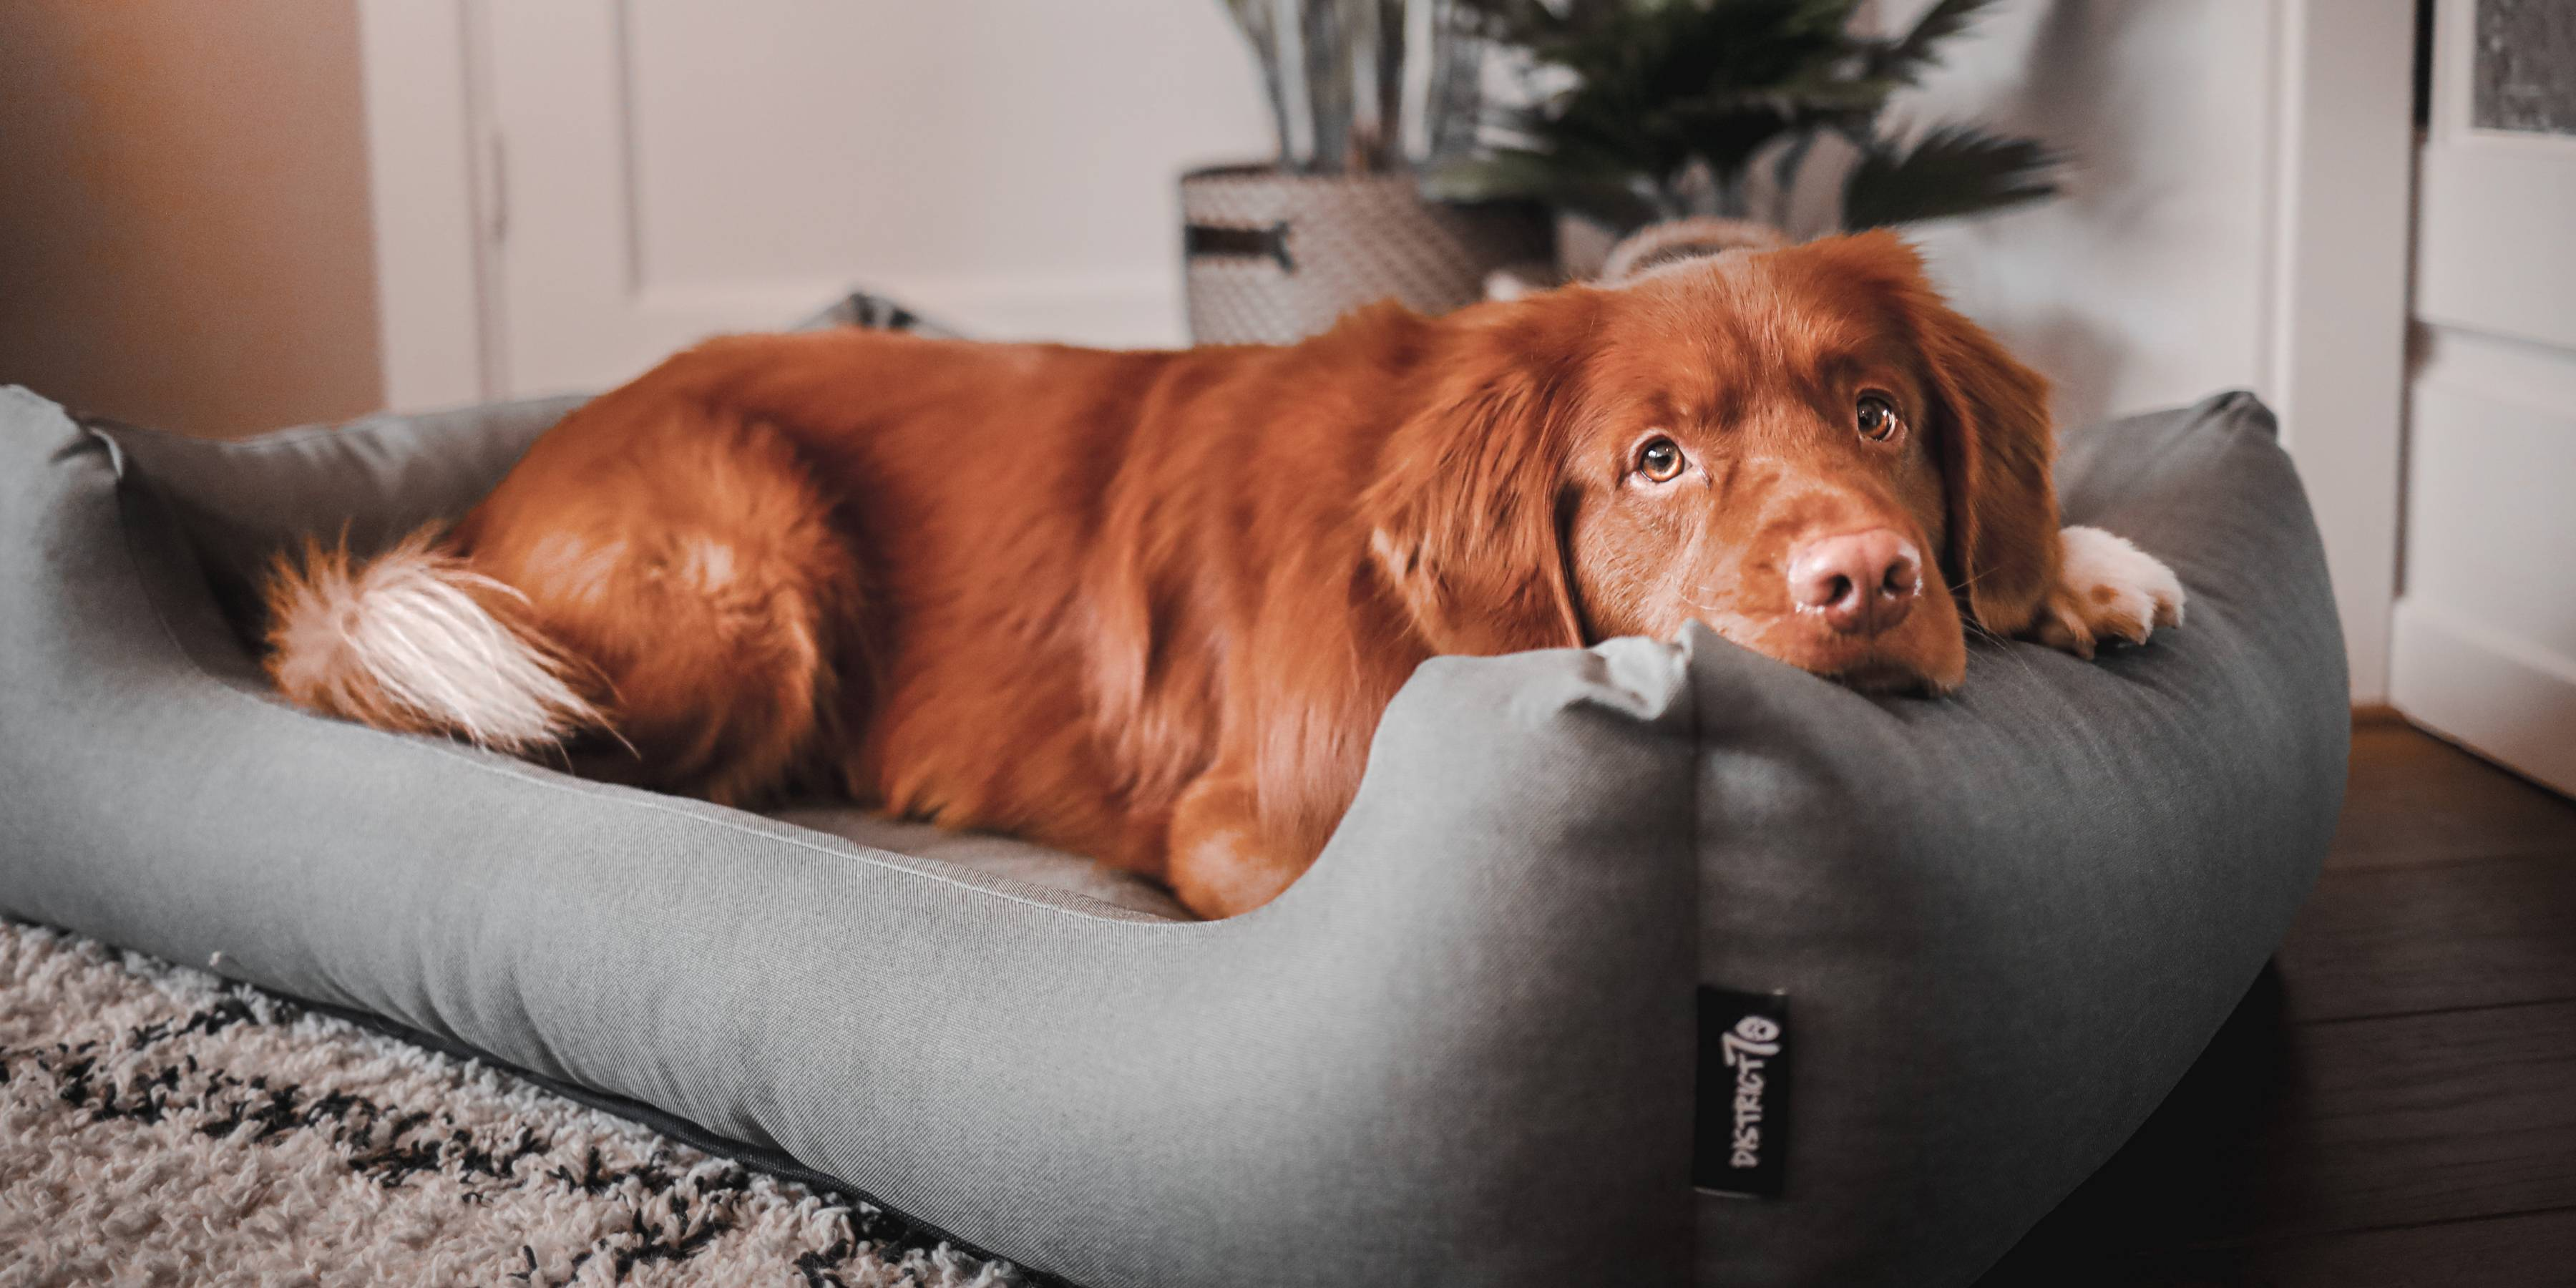 Stylish beds for your four-legged friend